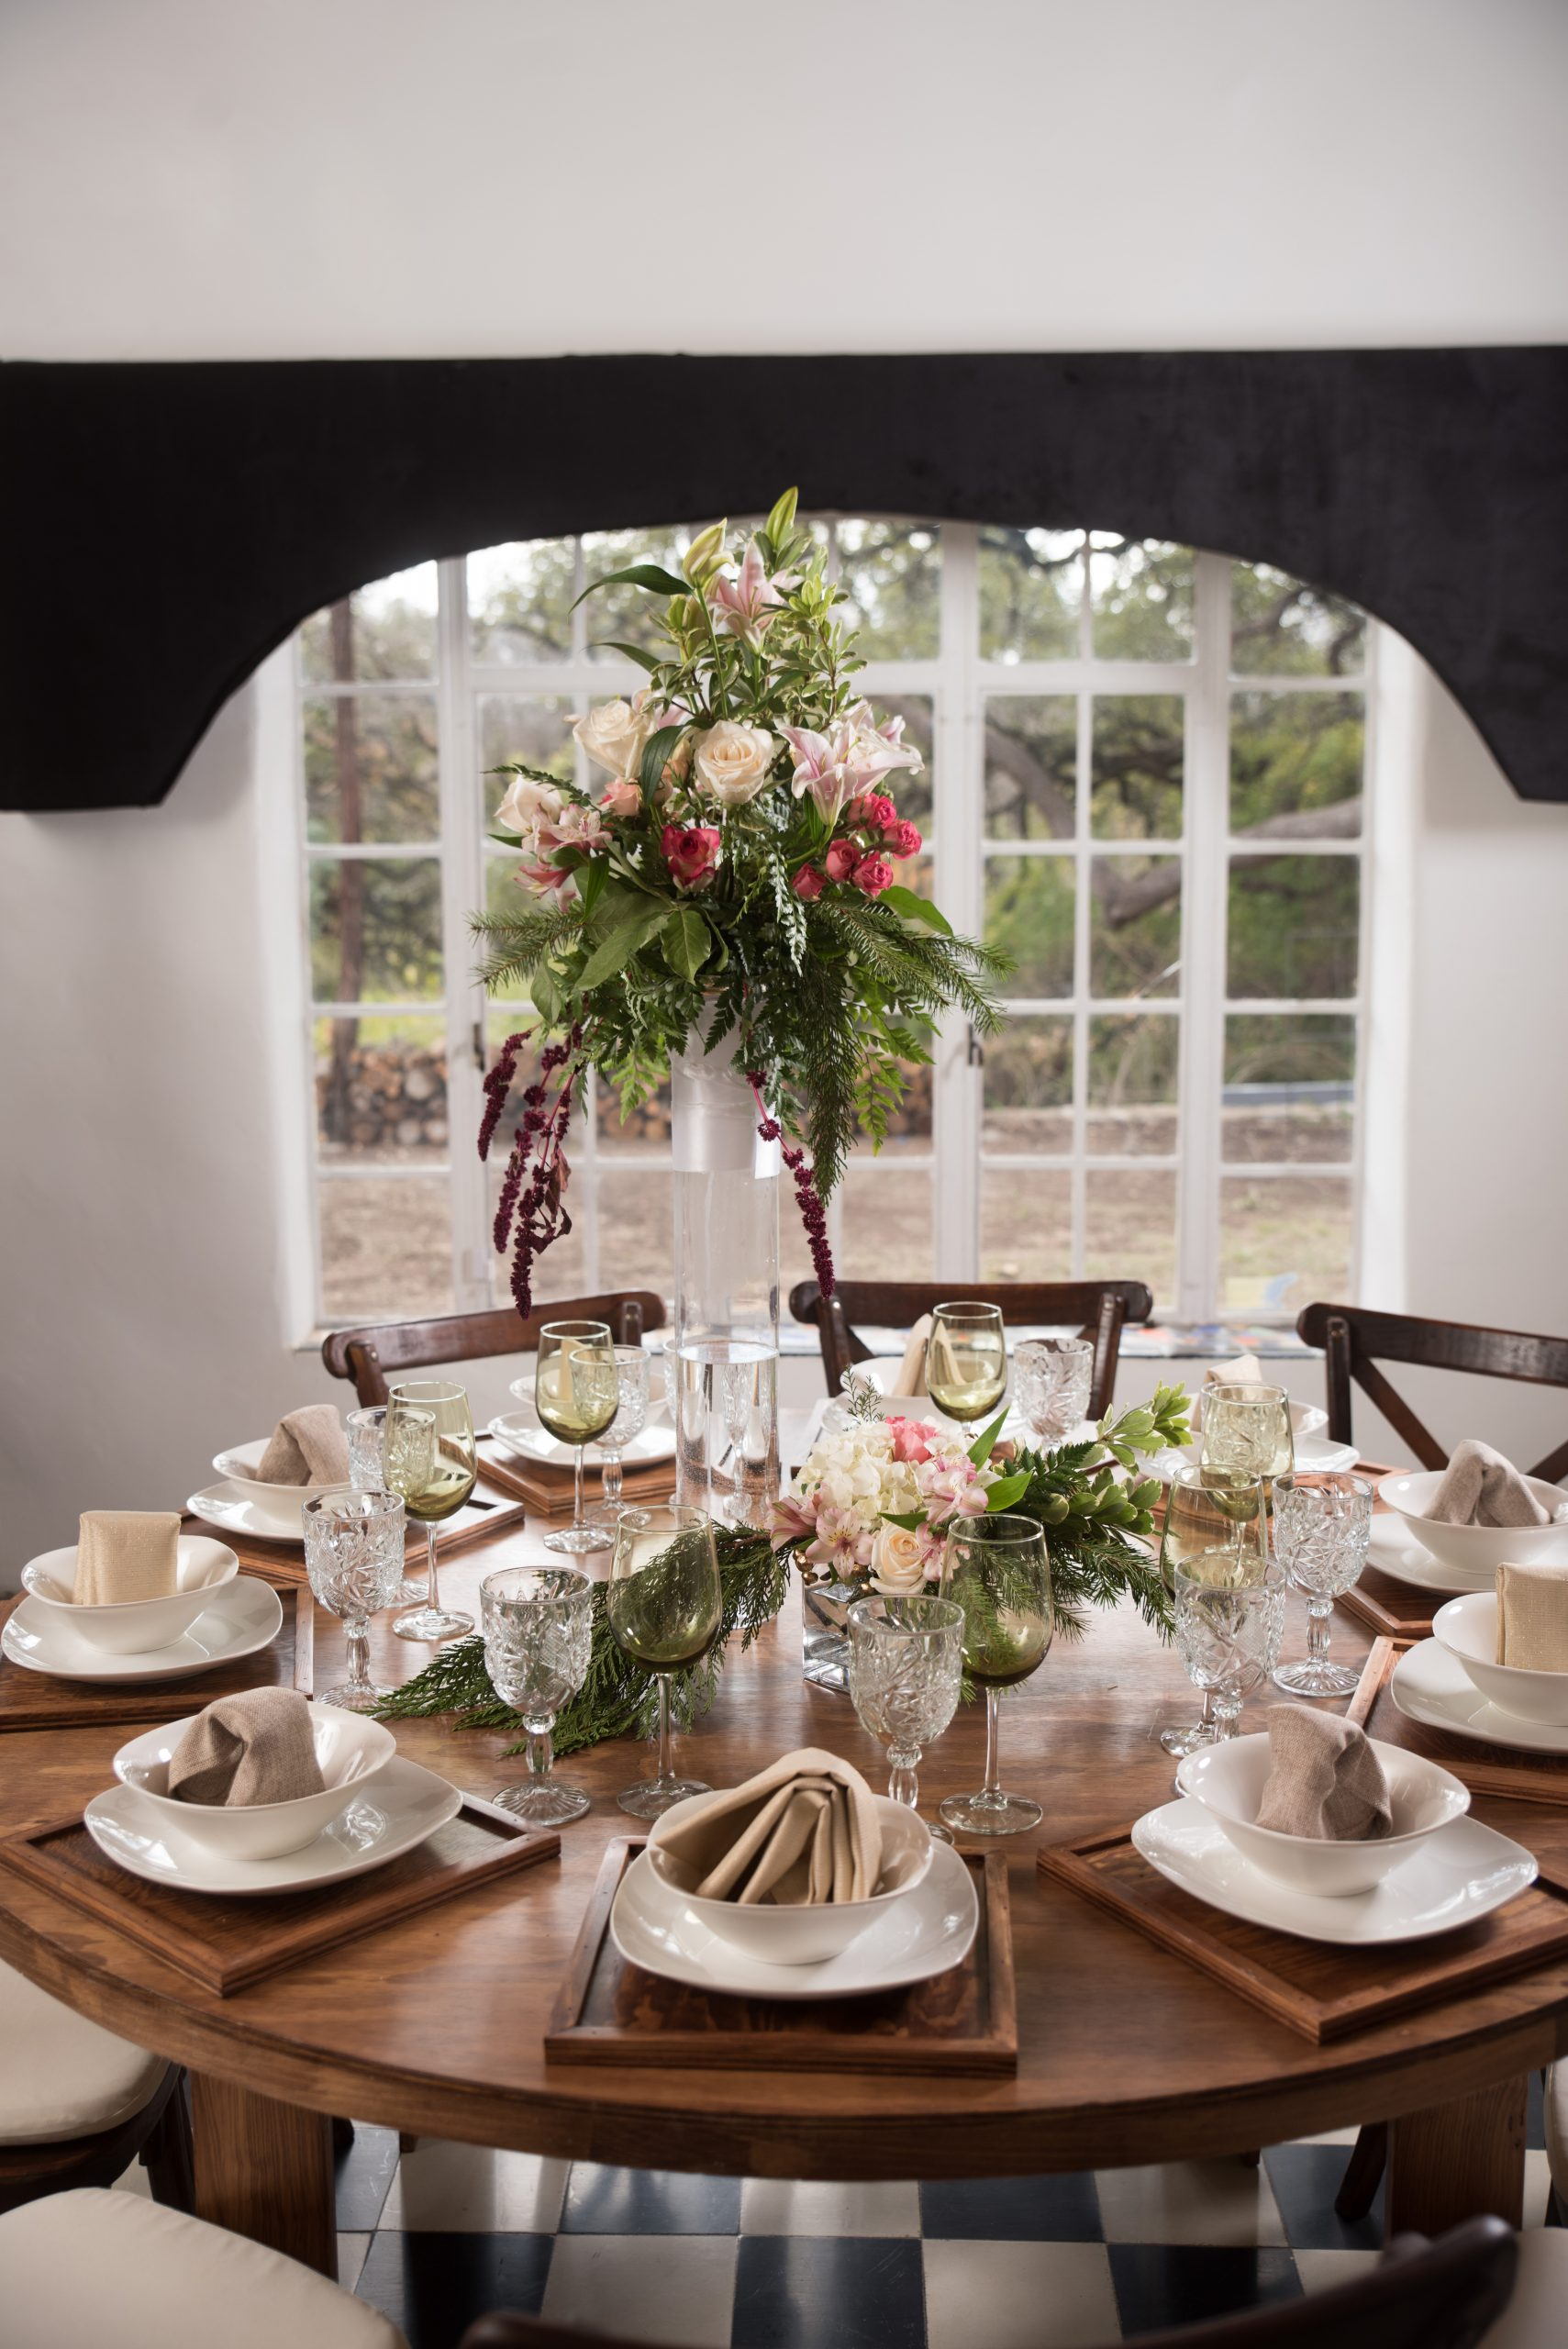 San Antonio wedding table setting at Tuscany venue